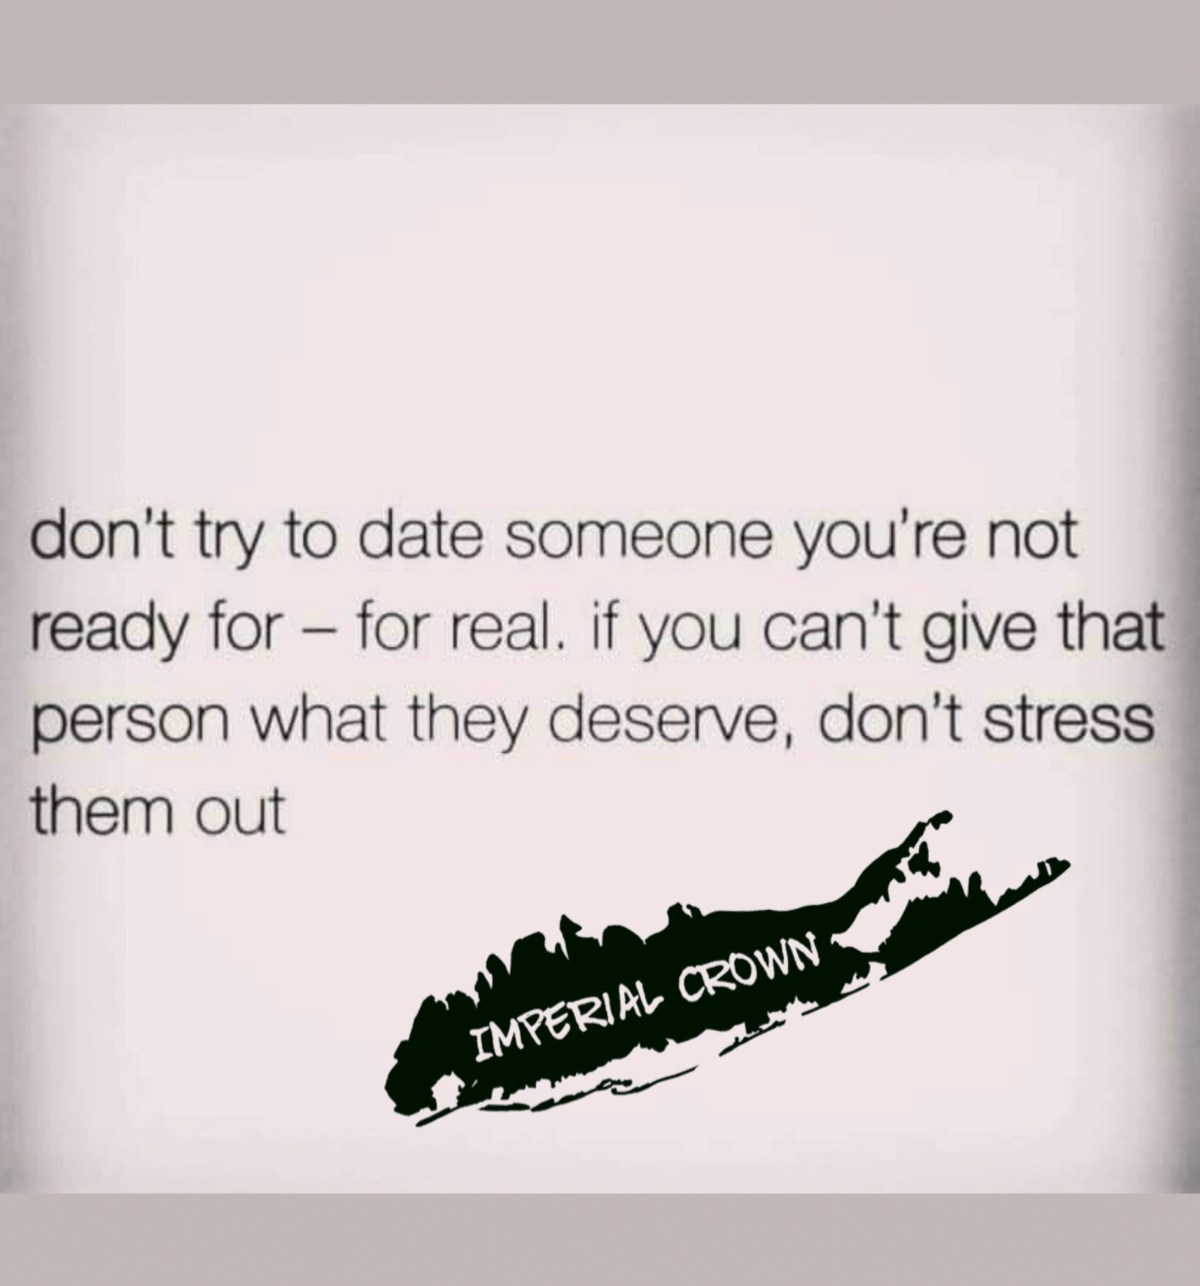 Dont try to date someone you're not ready for- forreal. If you can't give that person what they deserve, dont